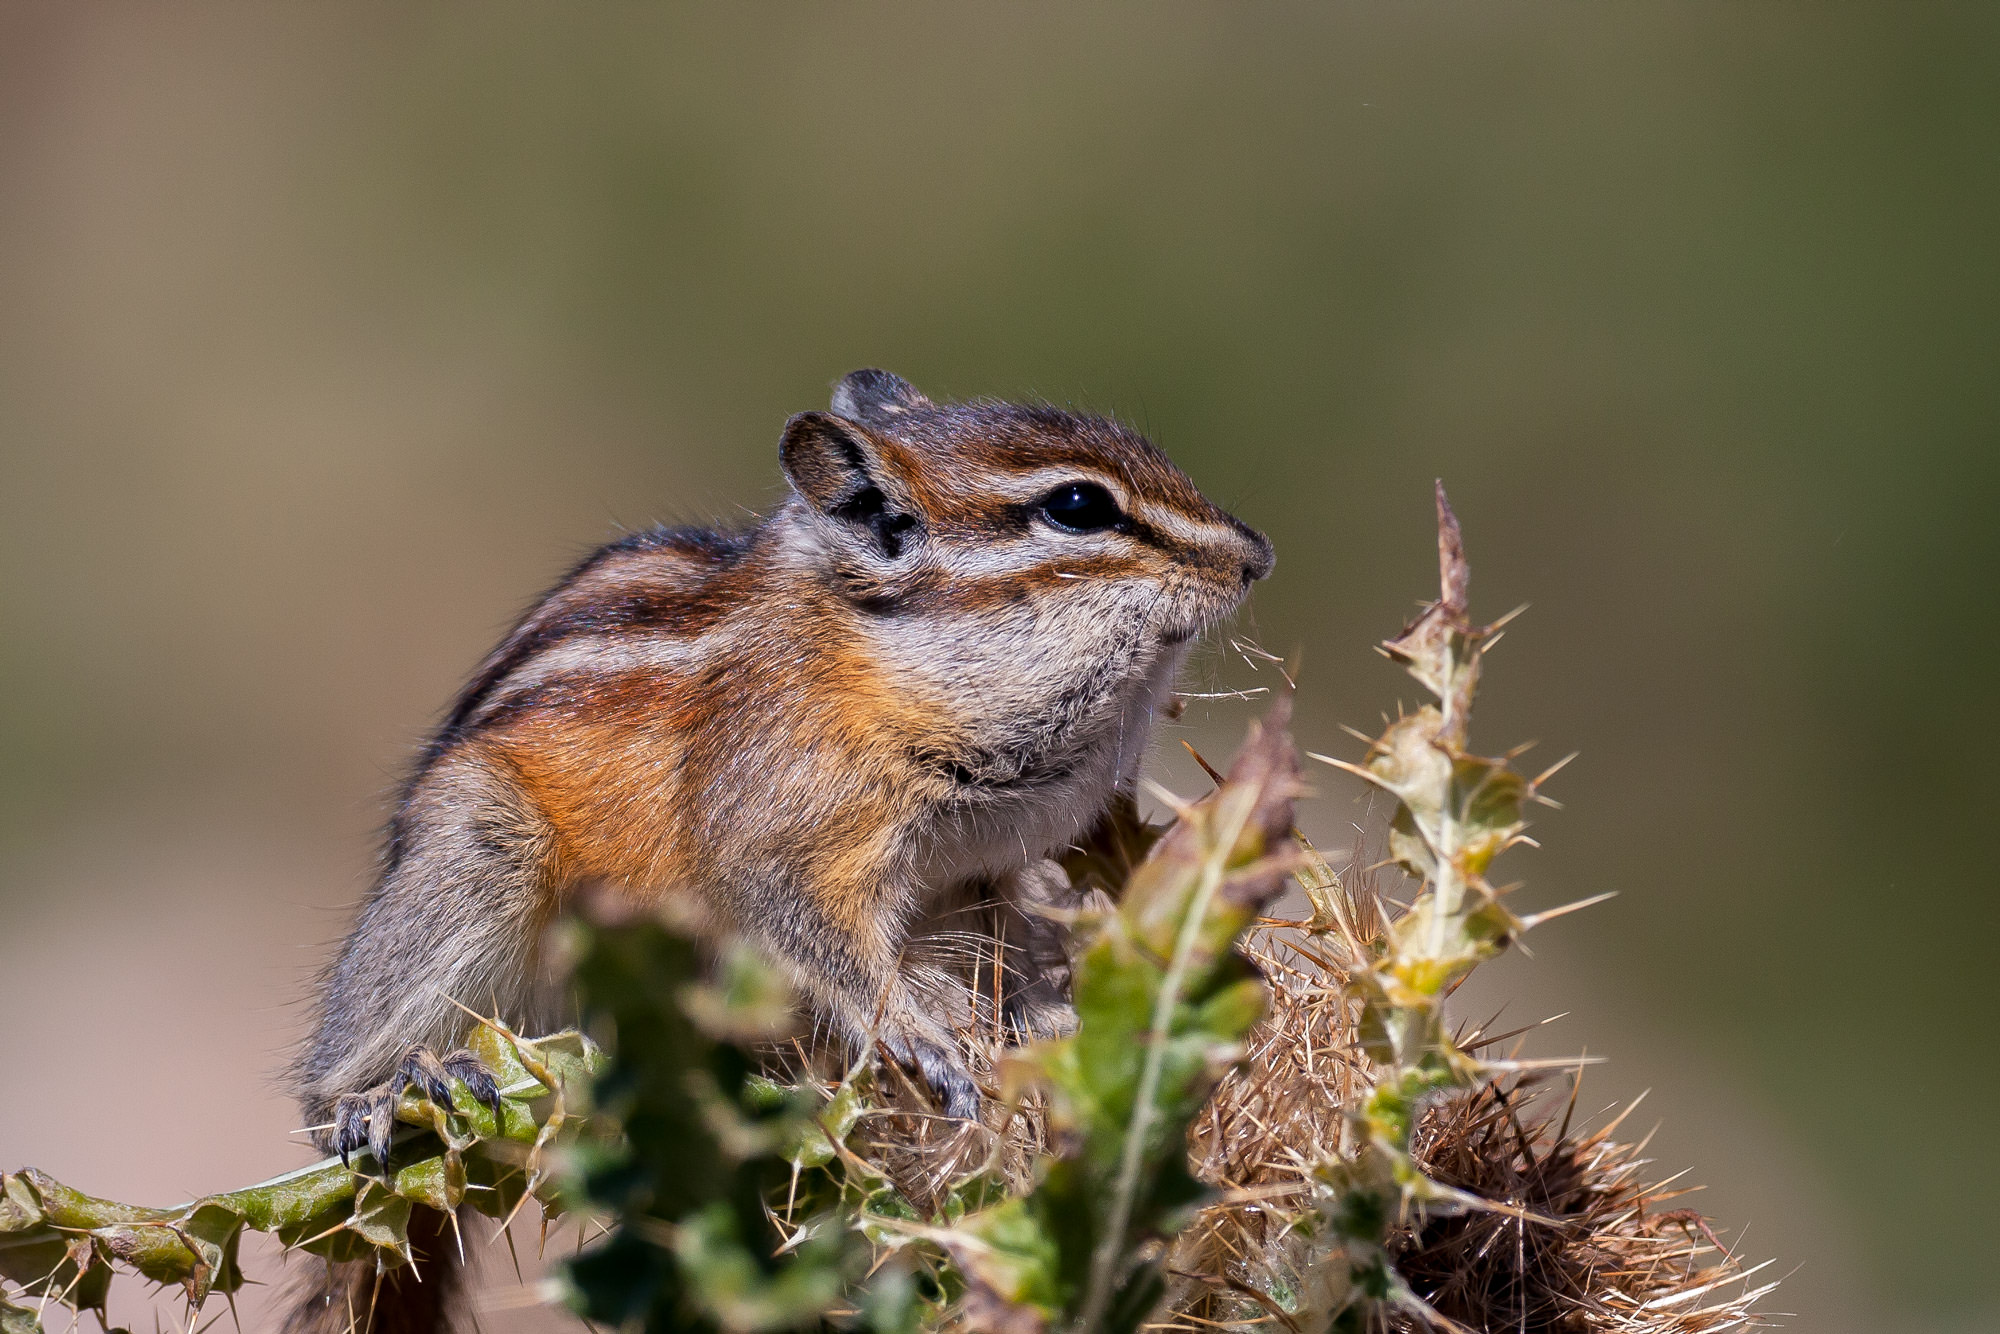 Chipmunk, Colorado, Rocky Mountain, National Park, limited edition, photograph, fine art, wildlife, photo